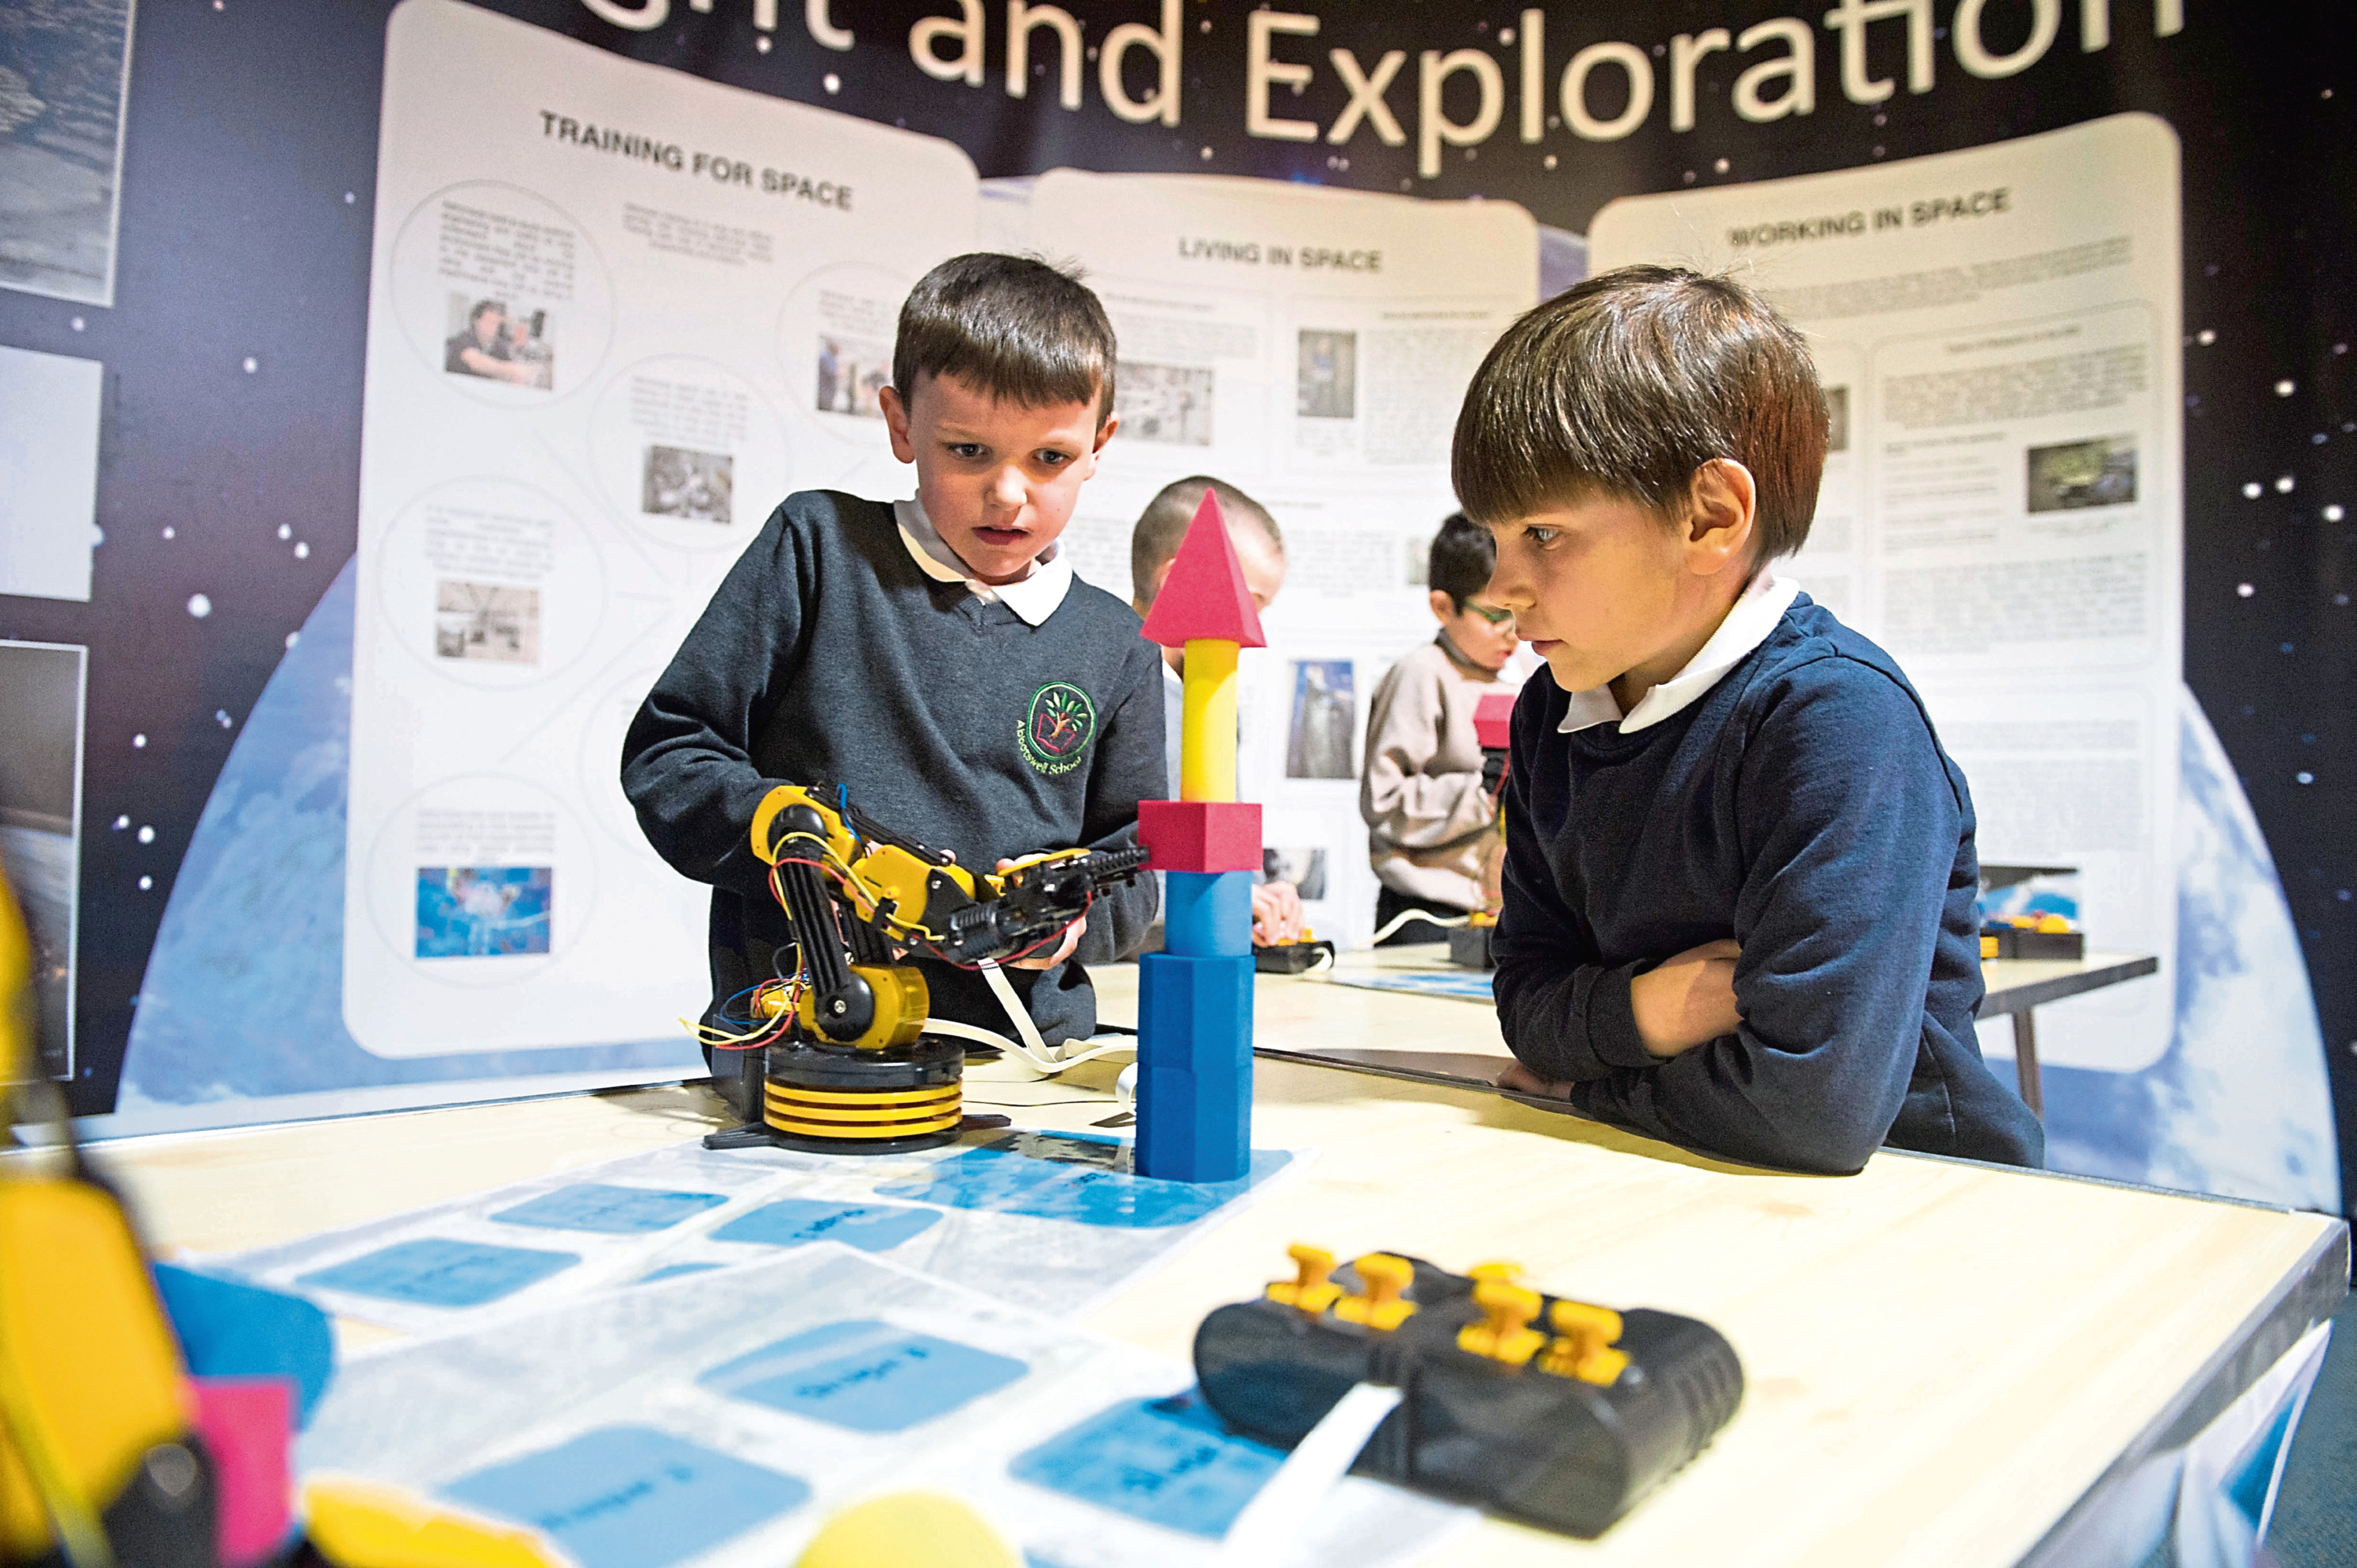 page 11 3004 Aberdeen,  Scotland, Tuesday 20th March 2018  NASA in Aberdeen | Inspiring the Next Generation  Aberdeen Science Centre   Picture by Abermedia